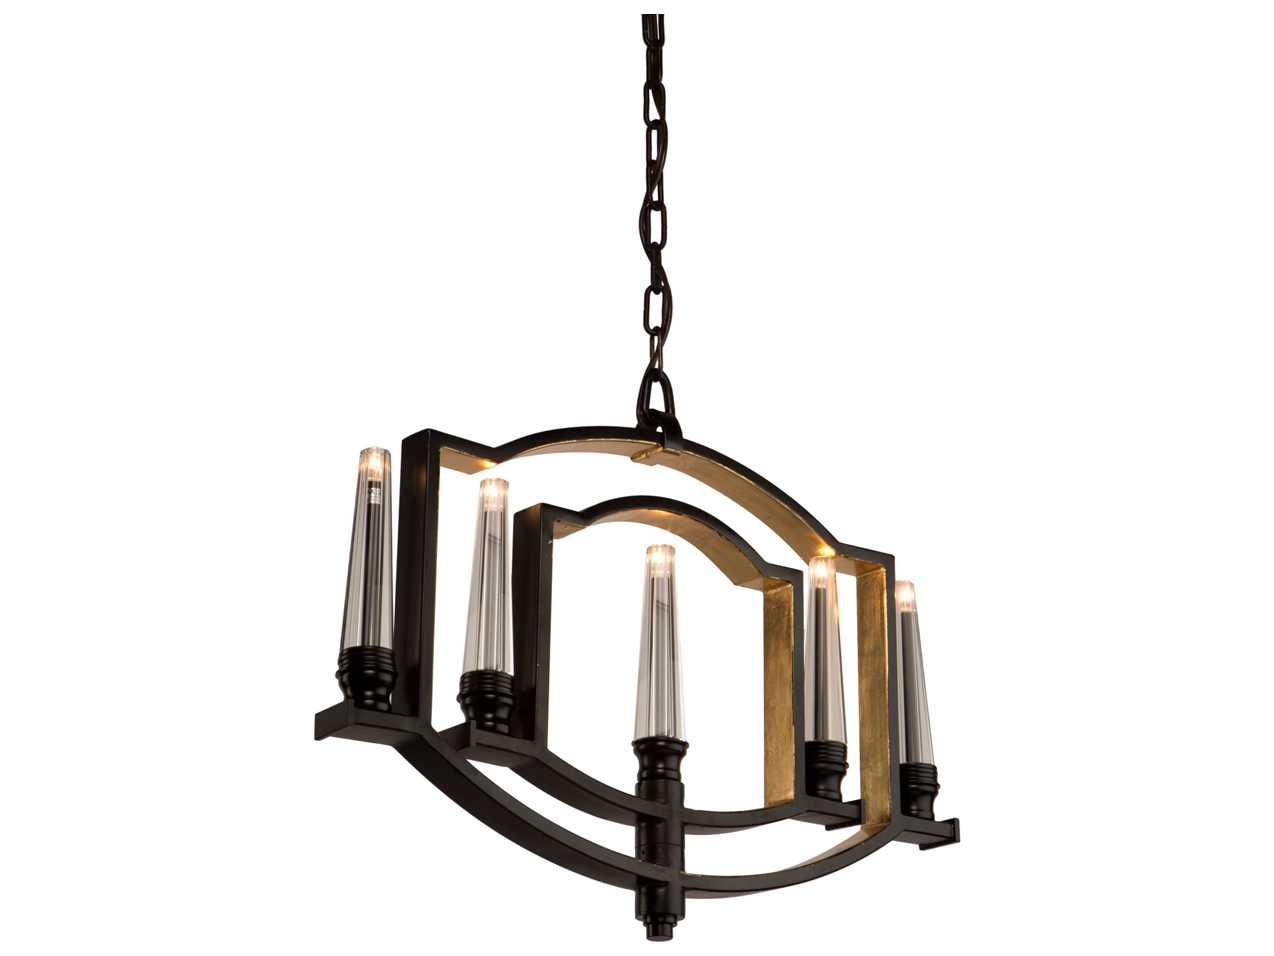 Artcraft Lighting Perceptions Oil Rubbed Bronze Five Light  : ACAC10255OBzm from www.luxedecor.com size 1274 x 956 jpeg 35kB